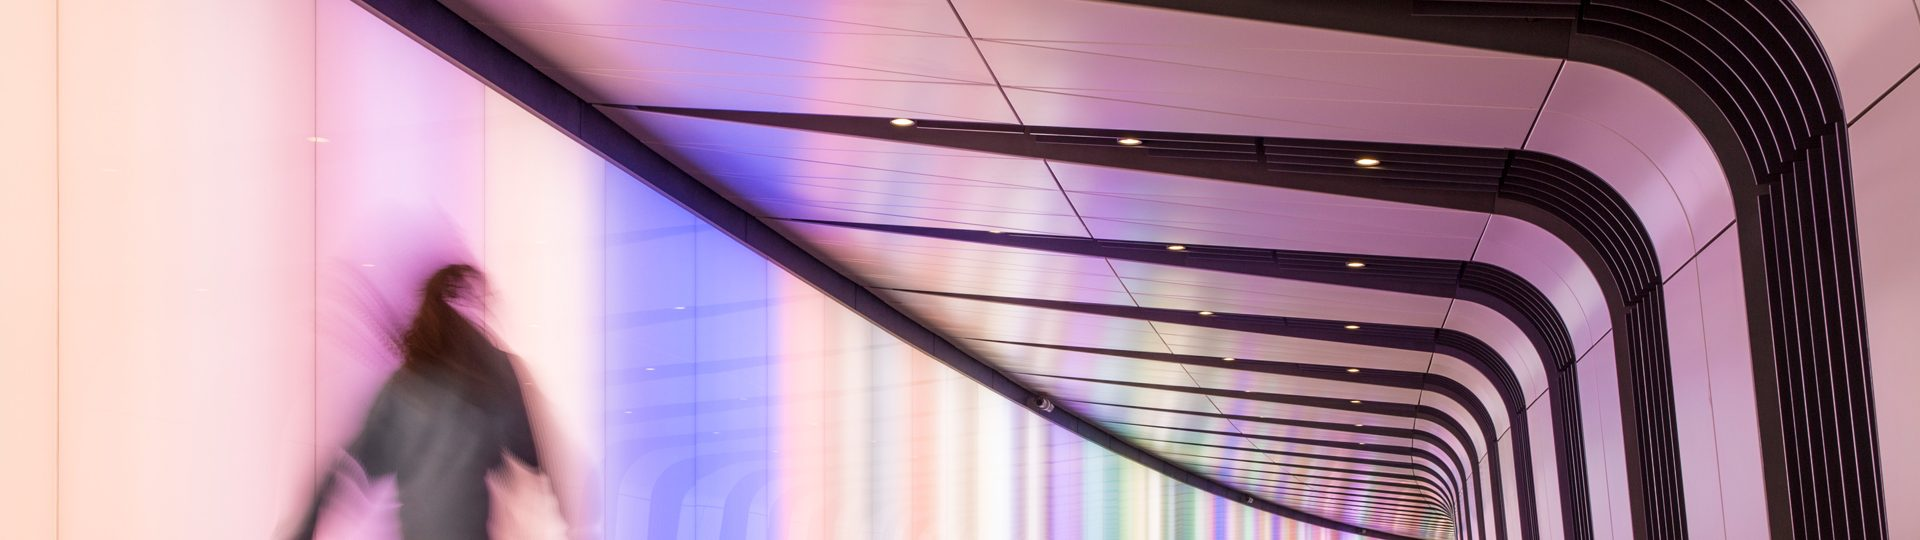 Specialist Lighting Installation | Kings Cross Tunnel | The Light Lab